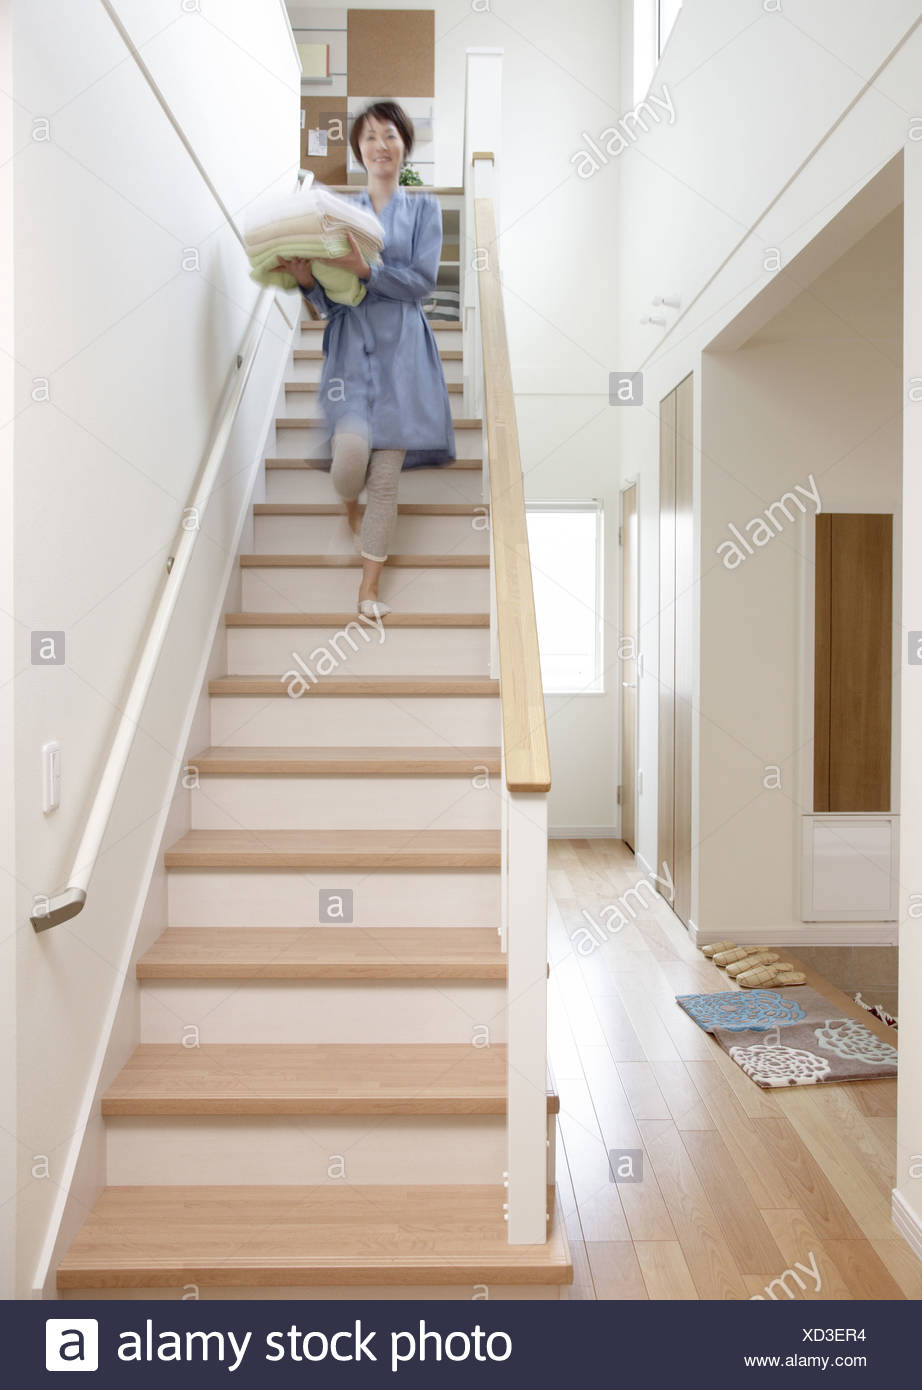 Woman downing stairs - Stock Image